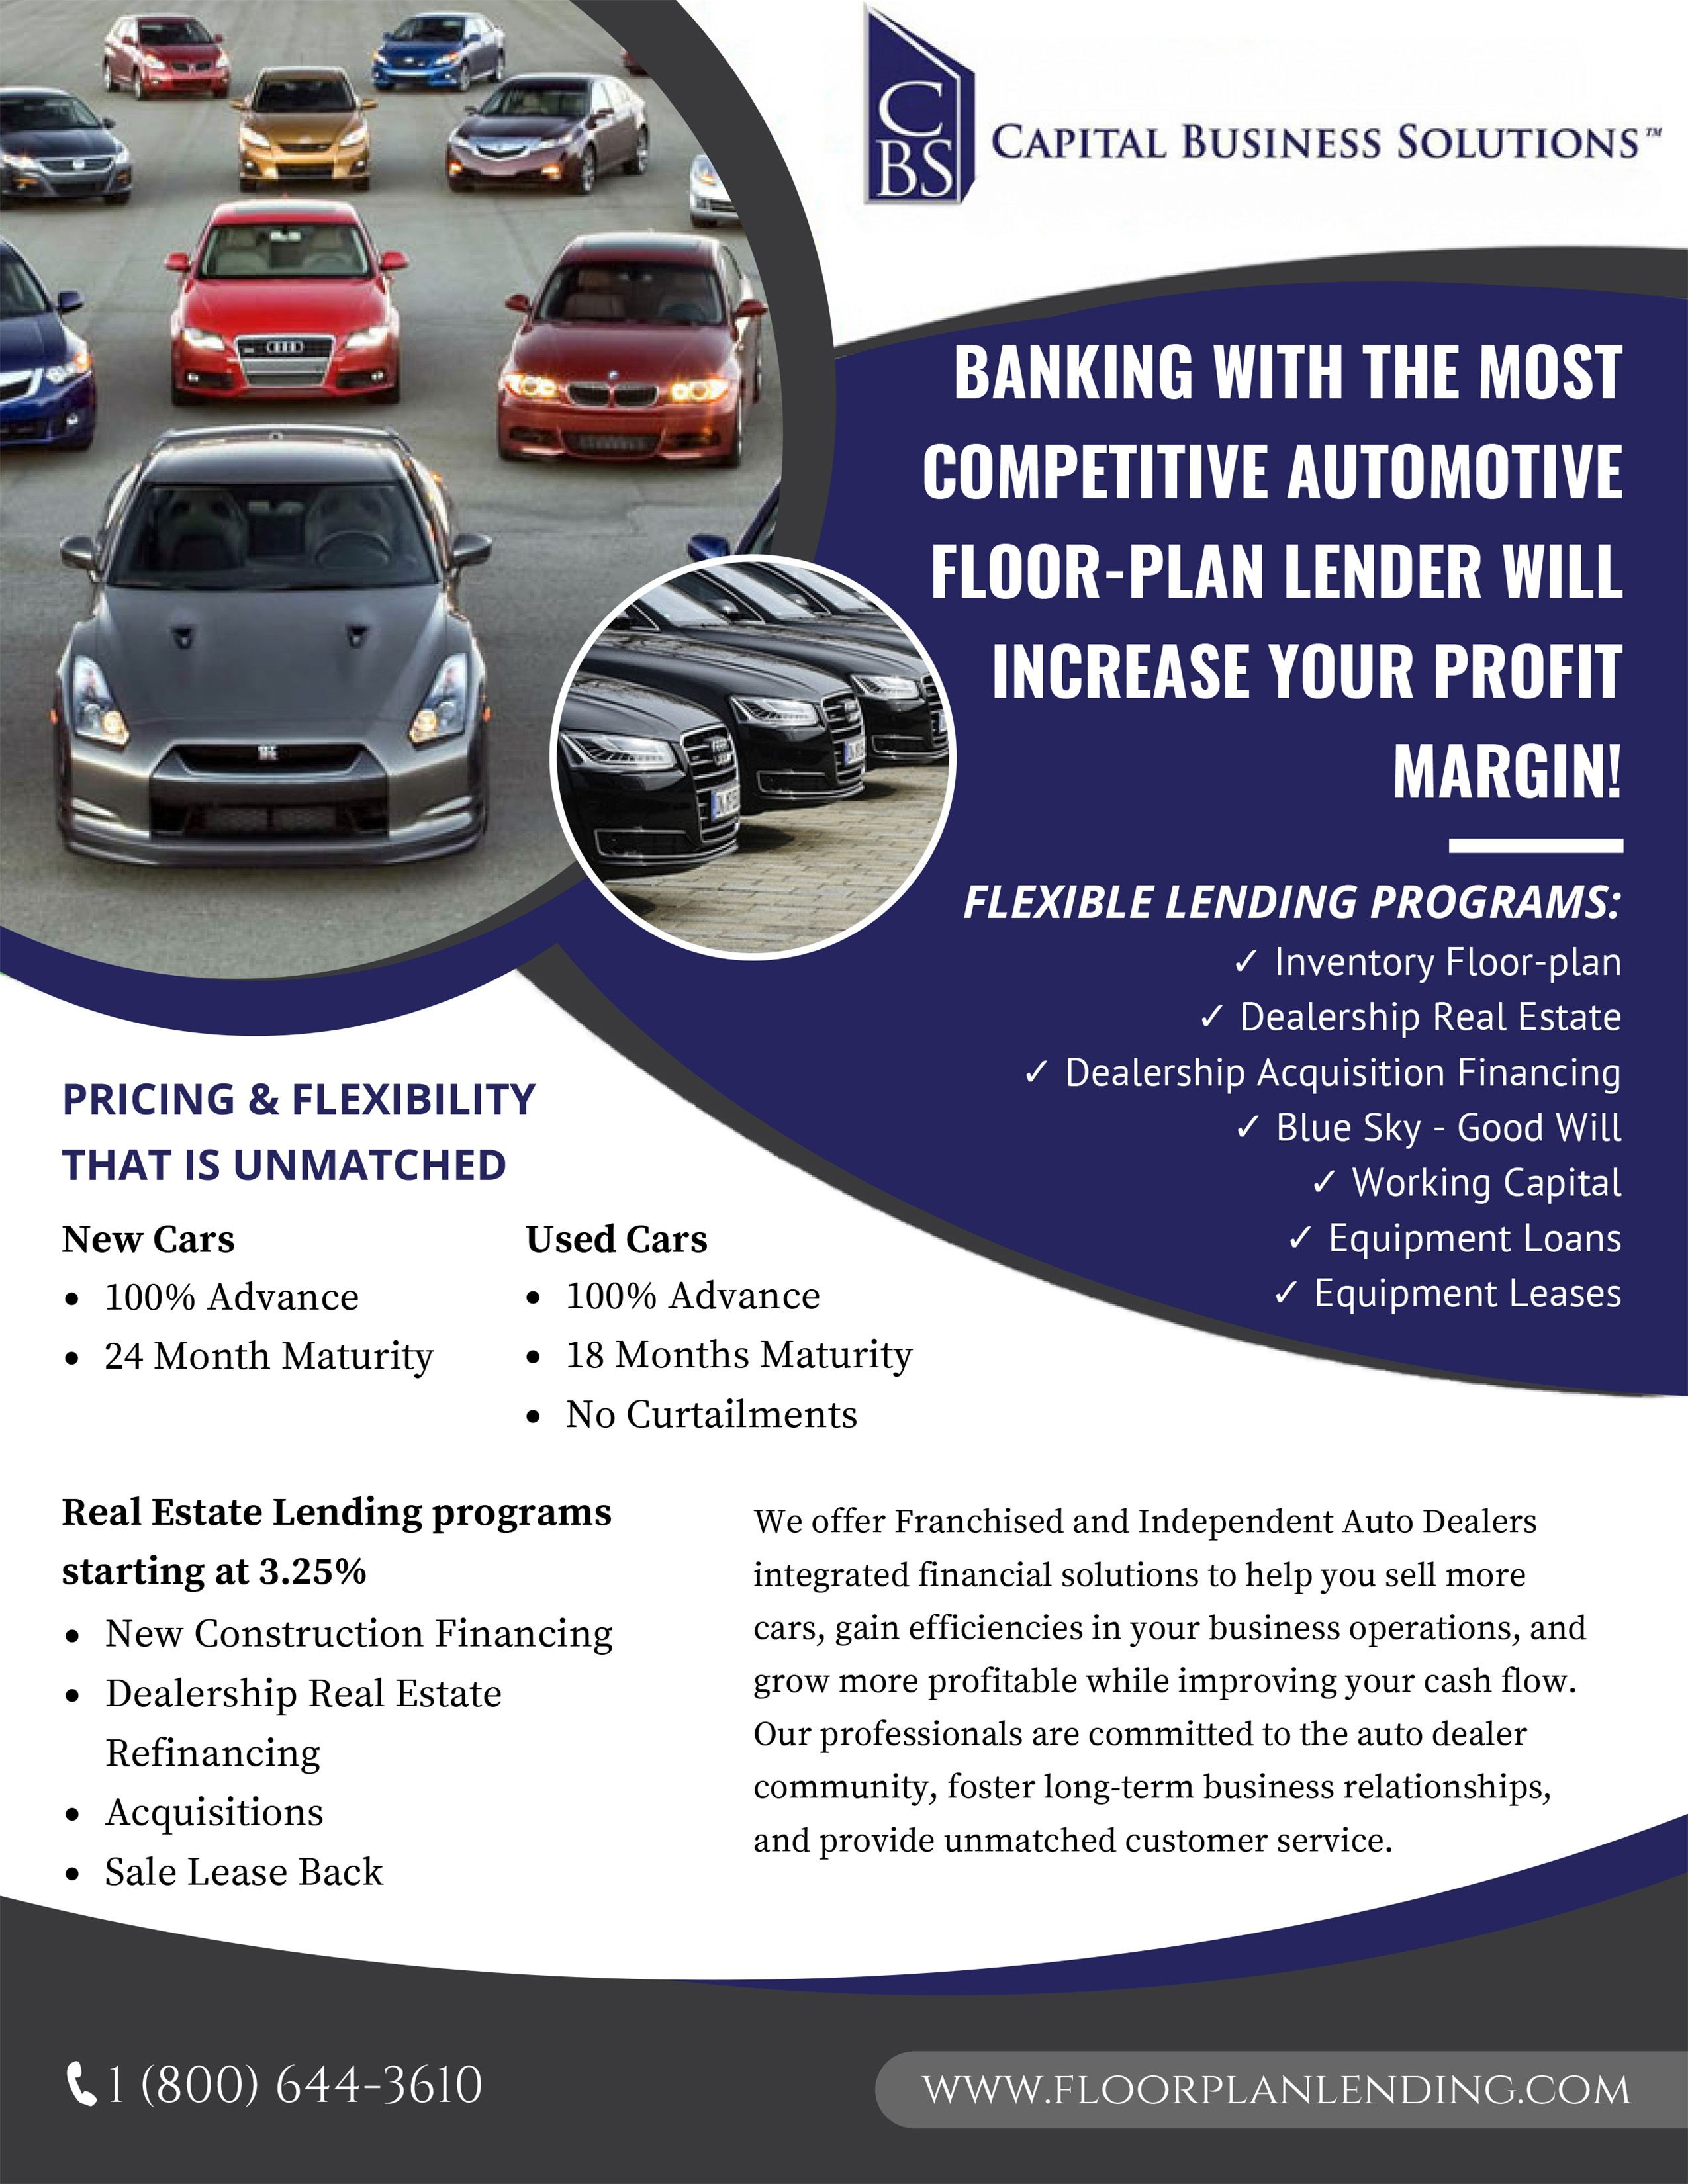 Pin By Chad Gutschow On Dealership Floorplan Lending Business Solutions Finance How To Plan